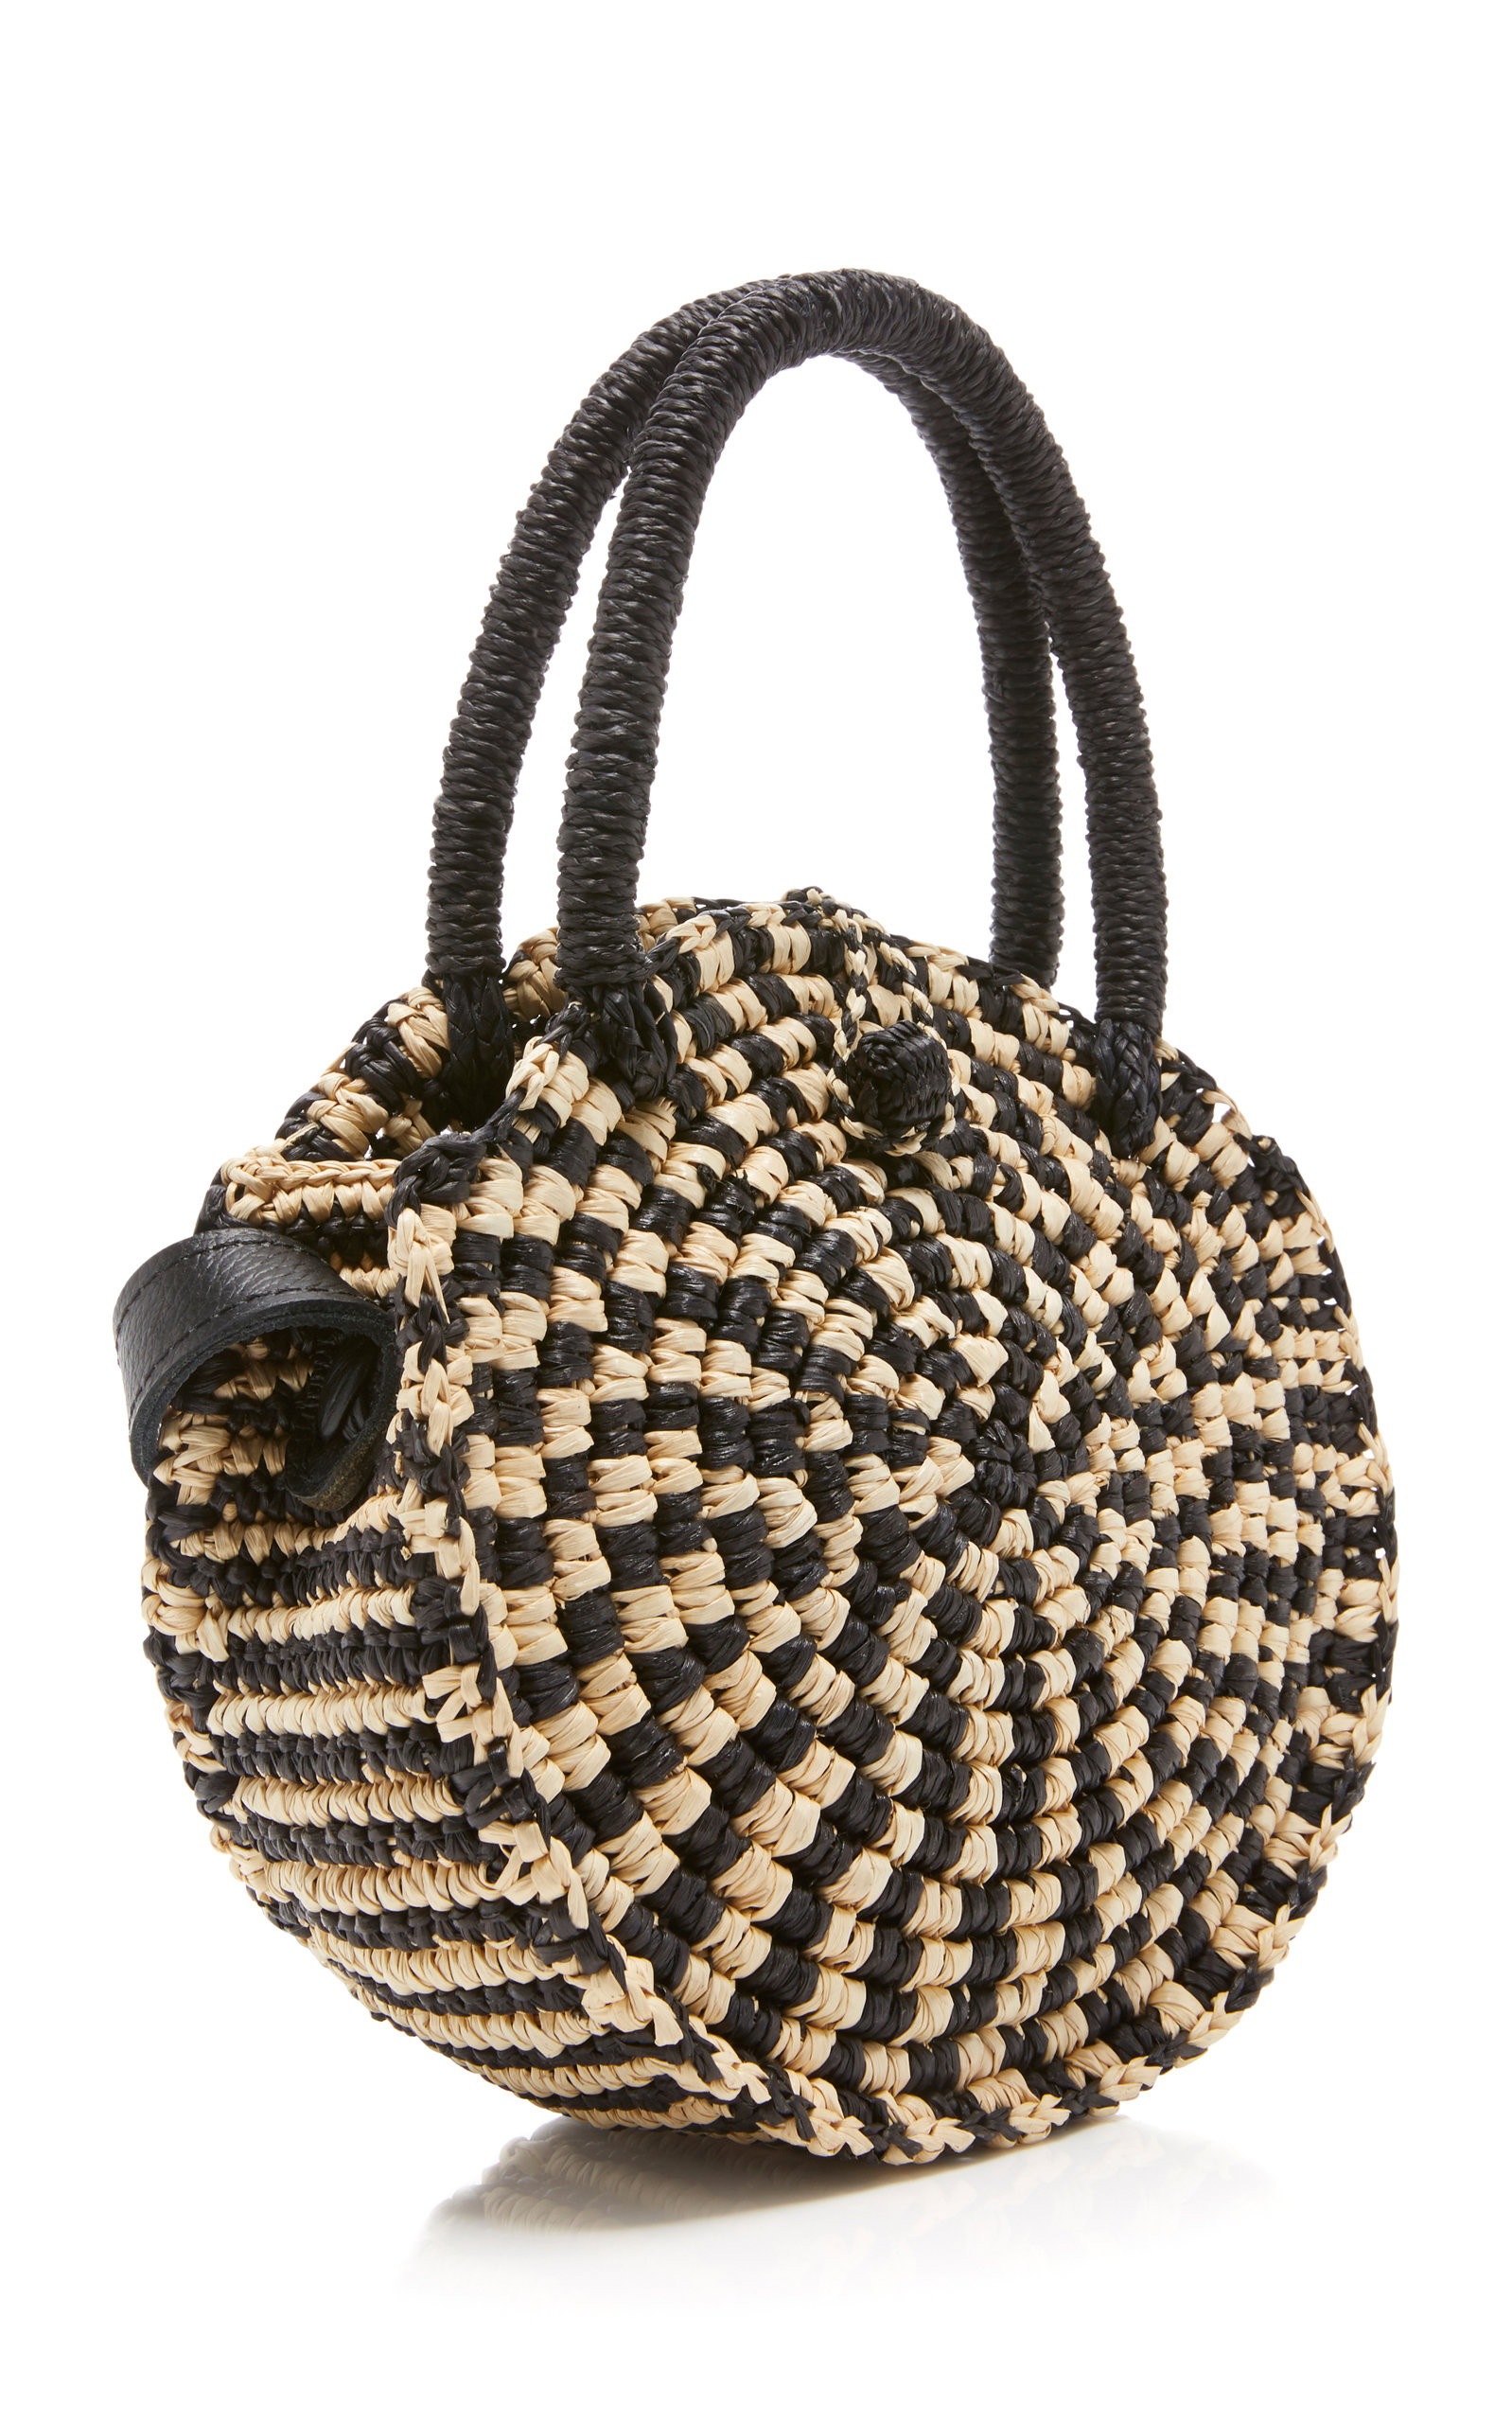 7ab4f76820f Sensi StudioWoven Toquilla Straw Shoulder Bag. CLOSE. Loading. Loading.  Loading